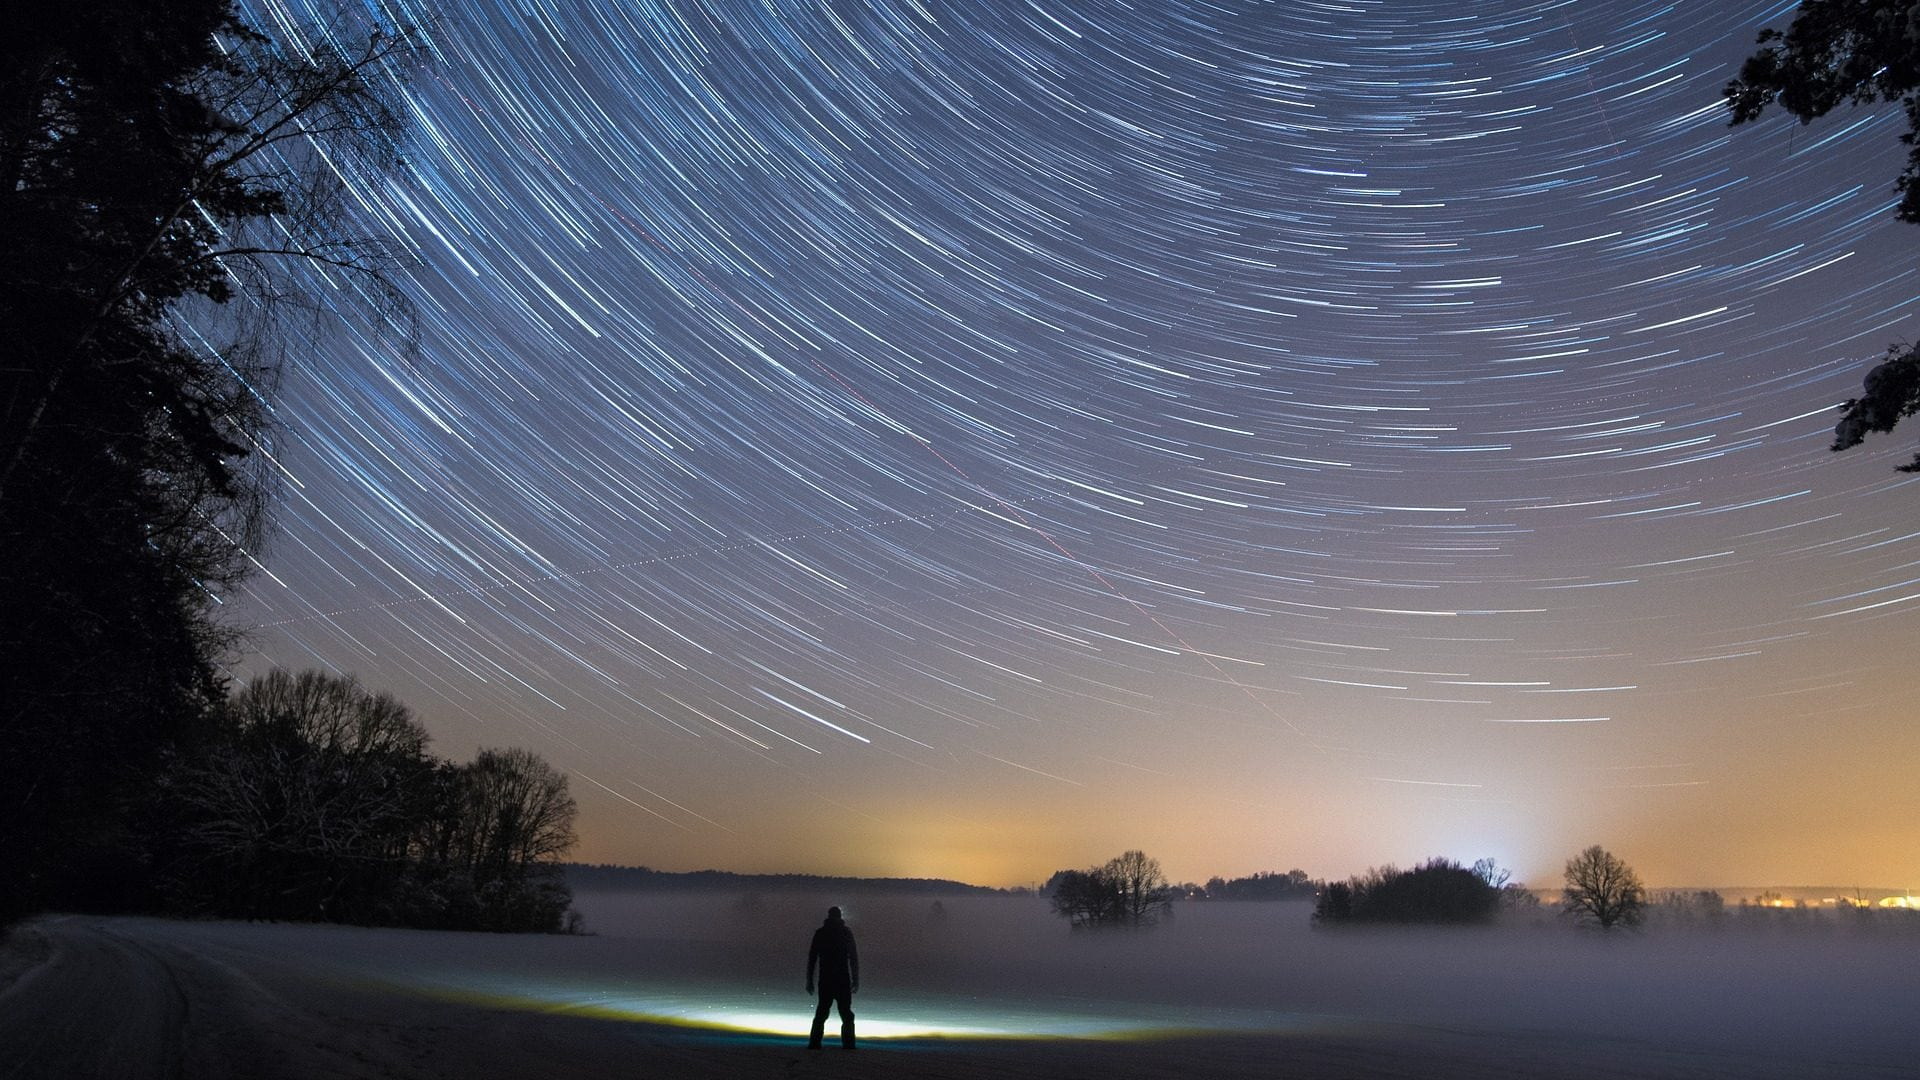 Image: Person looking up at the night sky